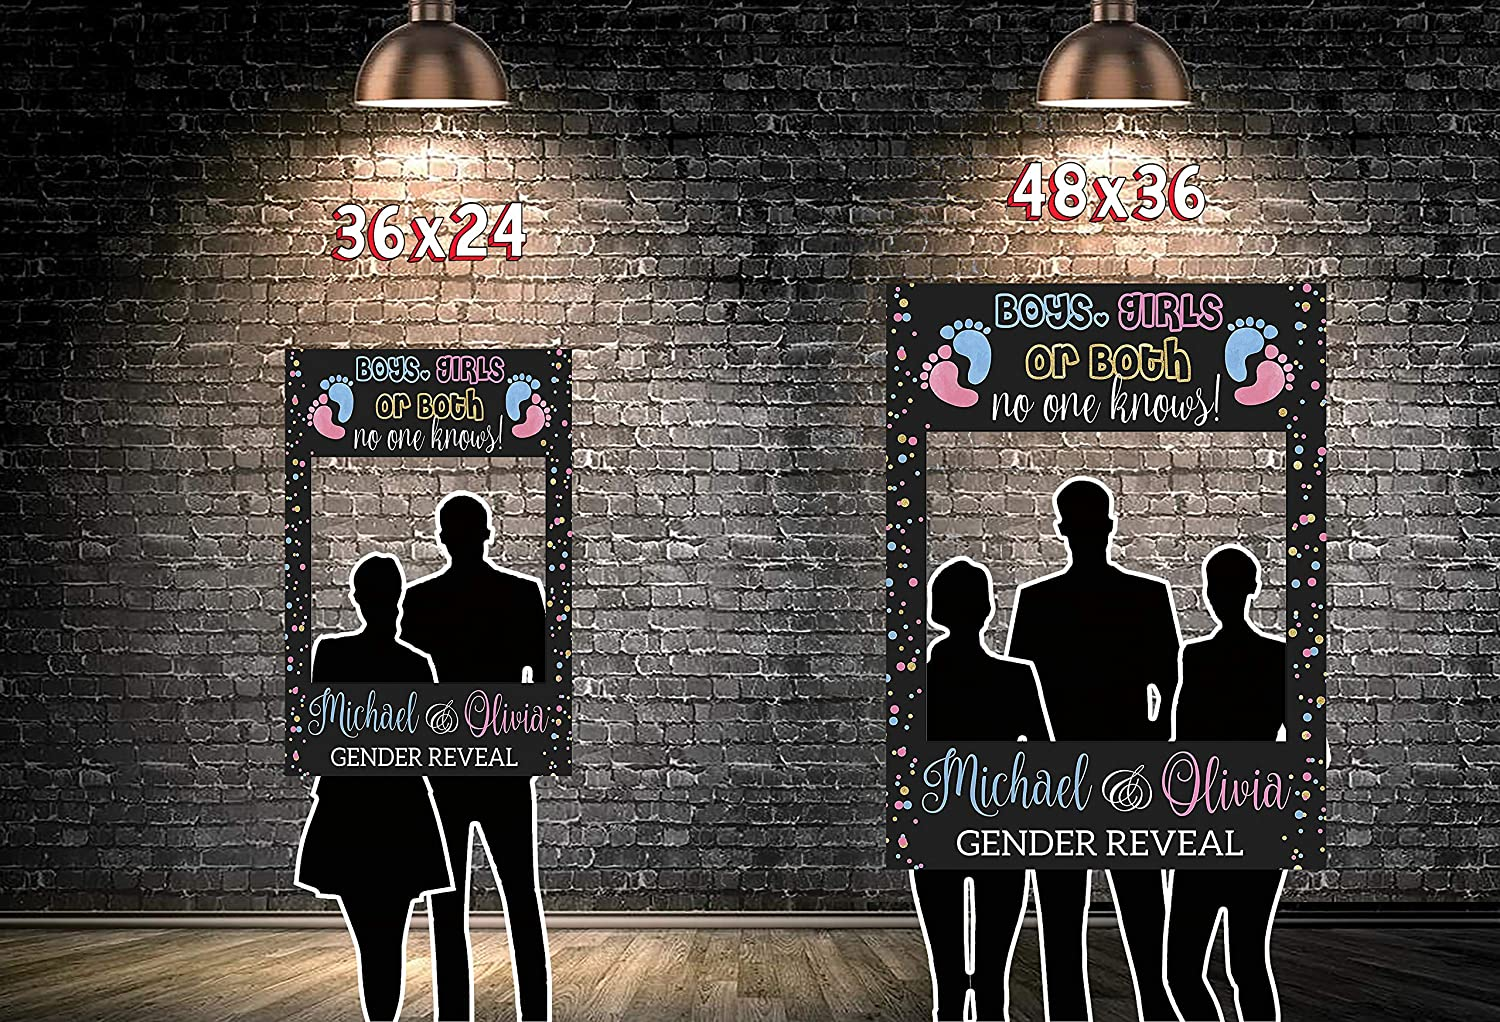 Boys or Girls Baby Reveal Party Gender Reveal Party Gender Reveal Photo Booth Frame Twin Baby Shower Photo Prop Twin Babies Gender Reveal Handmade DIY Party Supply Photo Booth Size 36x24,48x36